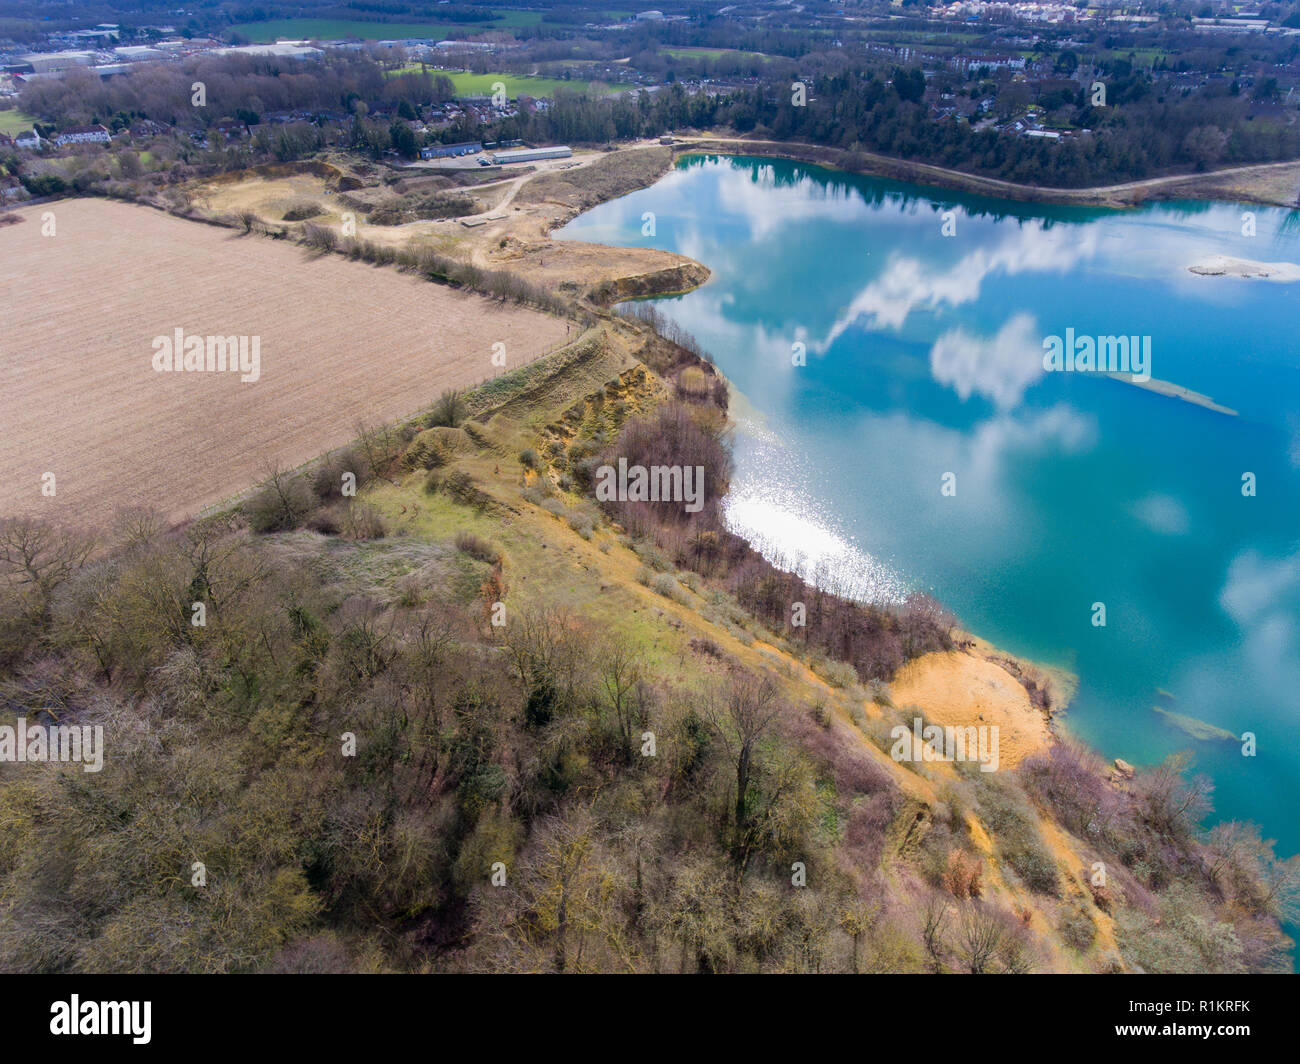 Blue water in a disused quarry Stock Photo